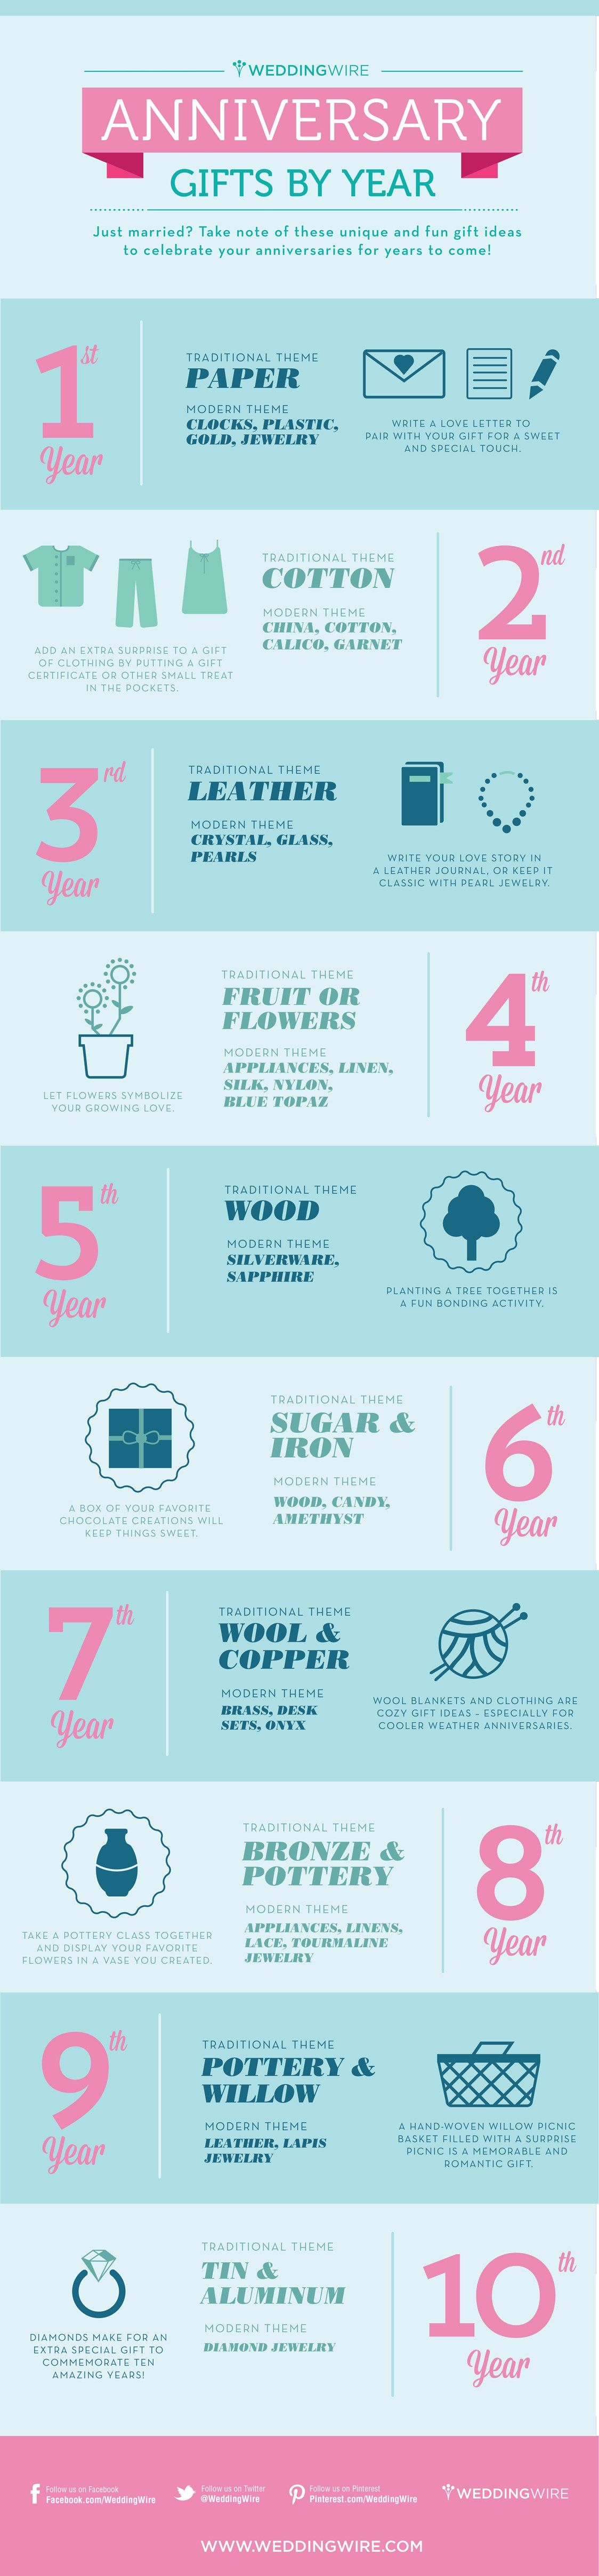 Did You Know That Wedding Anniversary Gifts Traditionally